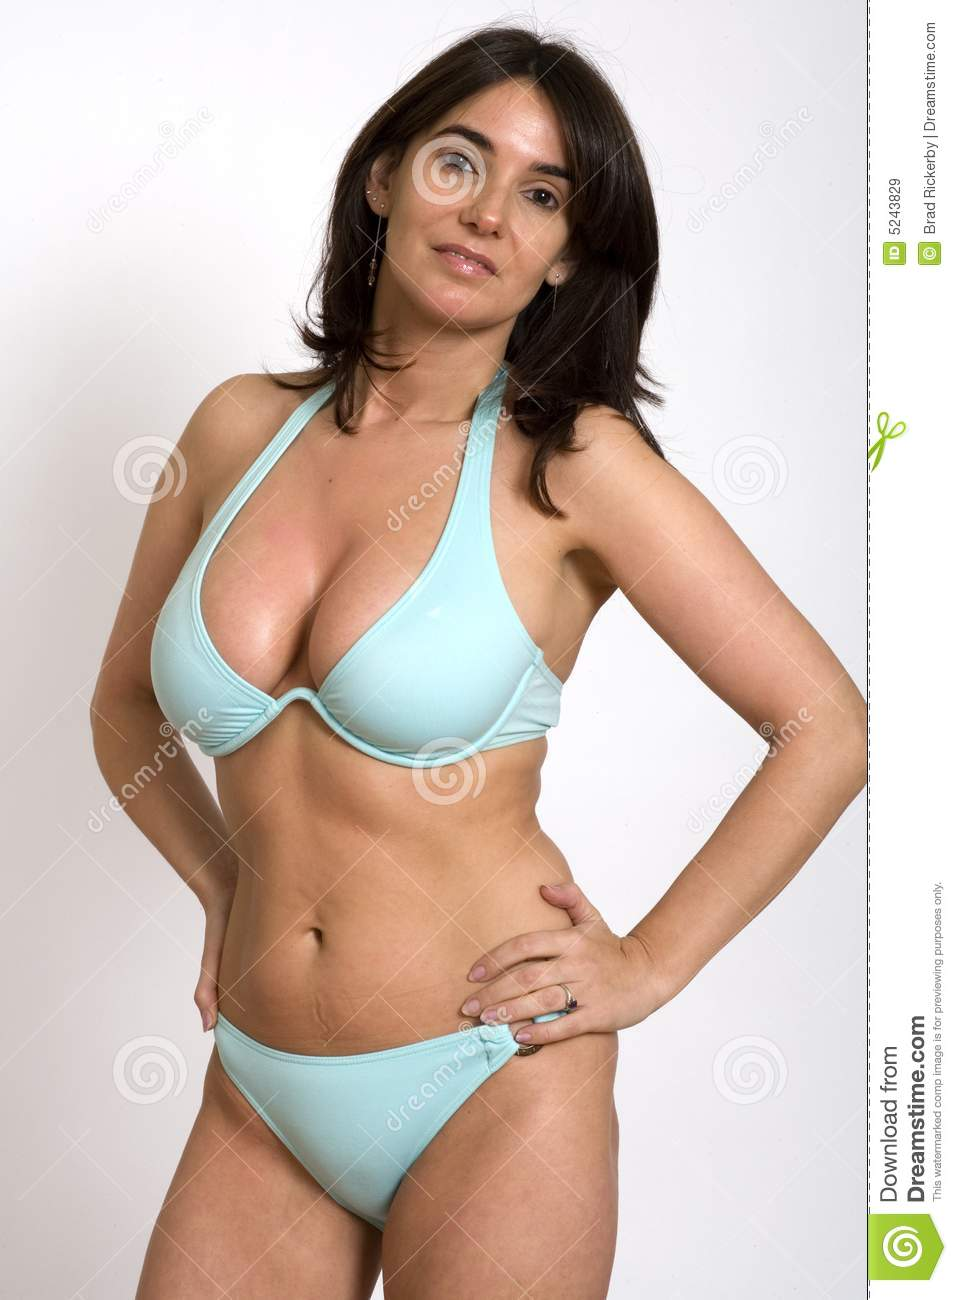 Woman in bikini stock image image of assured bikini Sexy 30